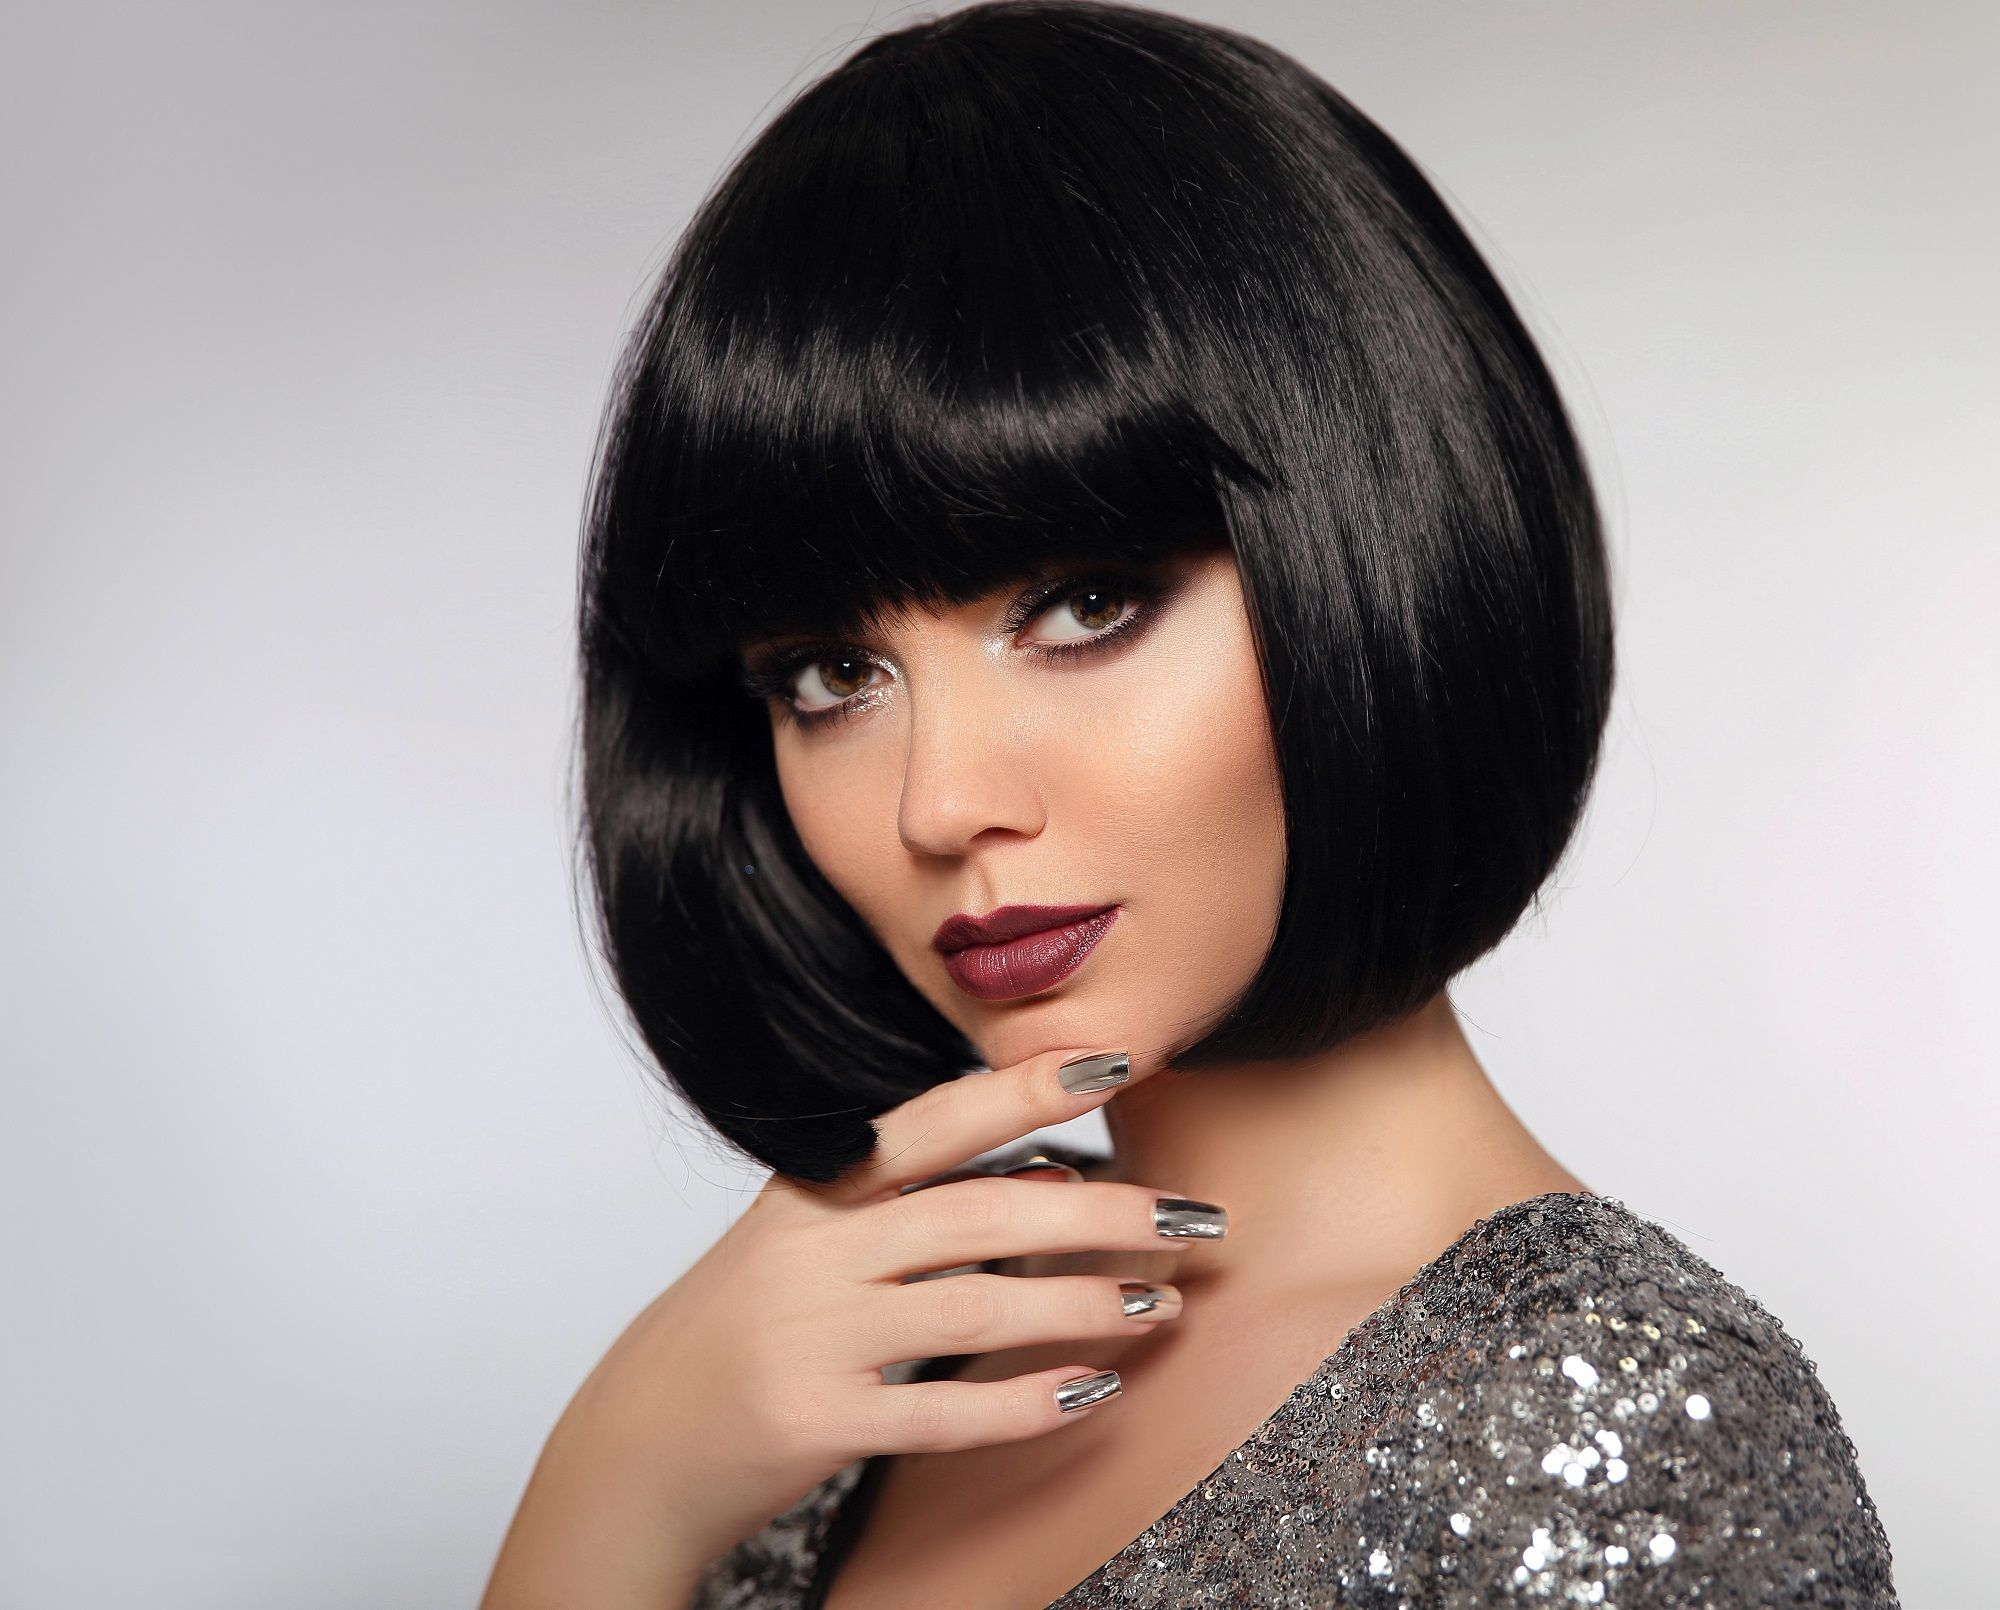 Should I get bangs: Closeup shot of a woman with black bob and blunt bangs wearing a sparkly dress